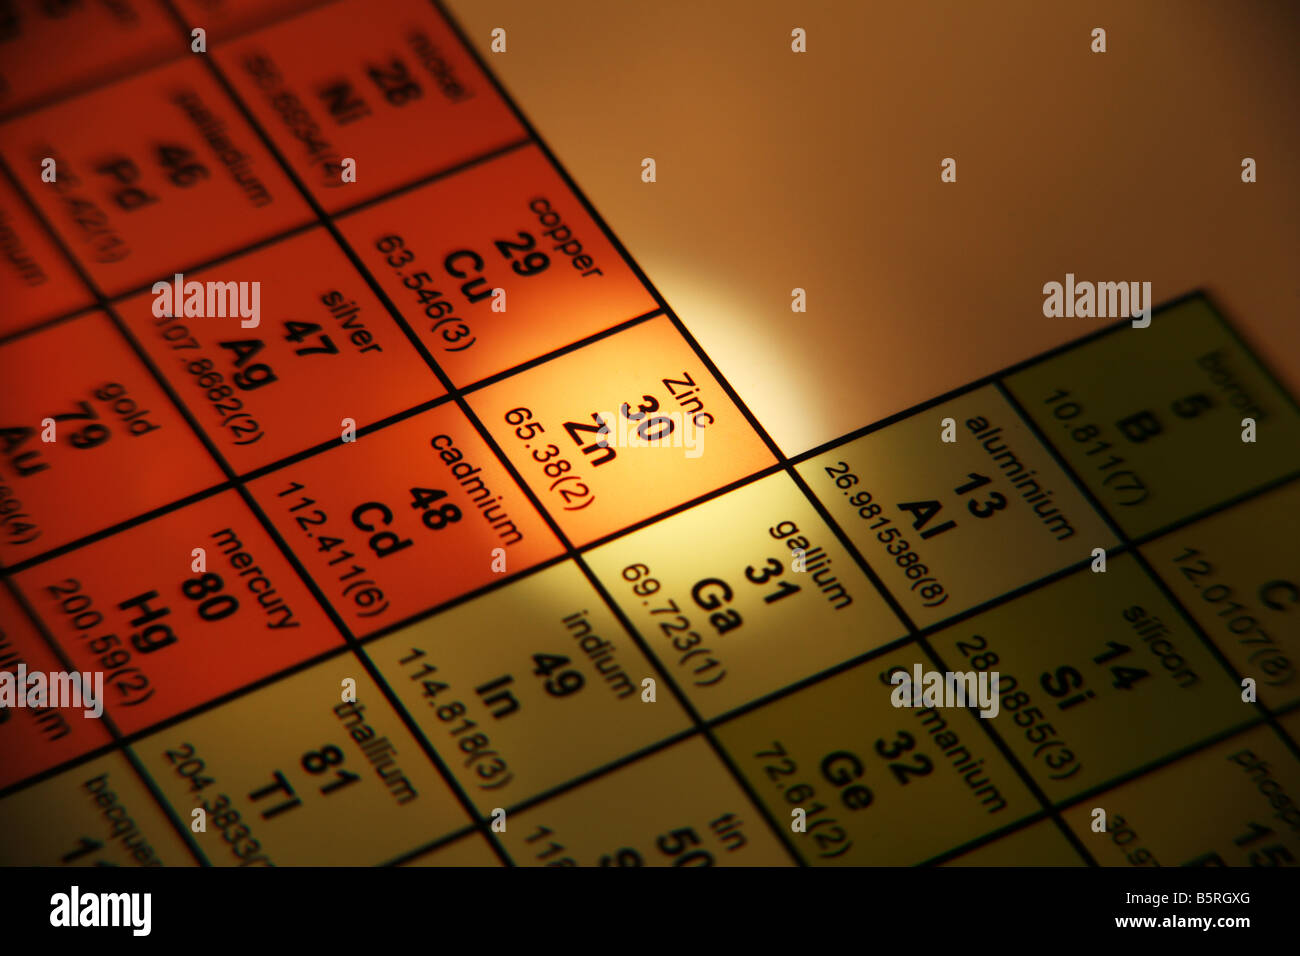 Periodic table of elements zinc stock photo royalty free image periodic table of elements zinc gamestrikefo Image collections